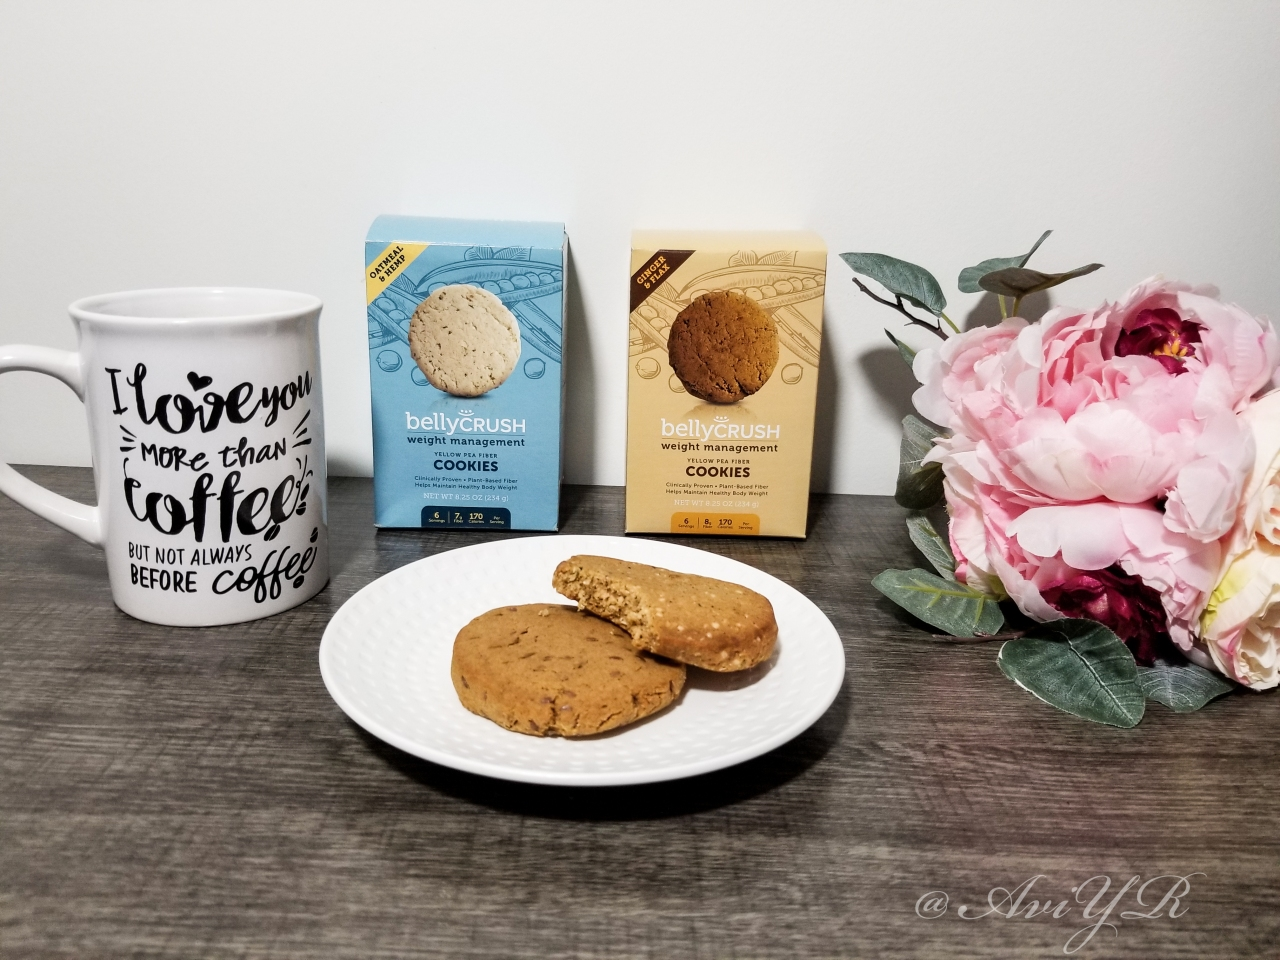 Belly Crush Weight LossCookies?!